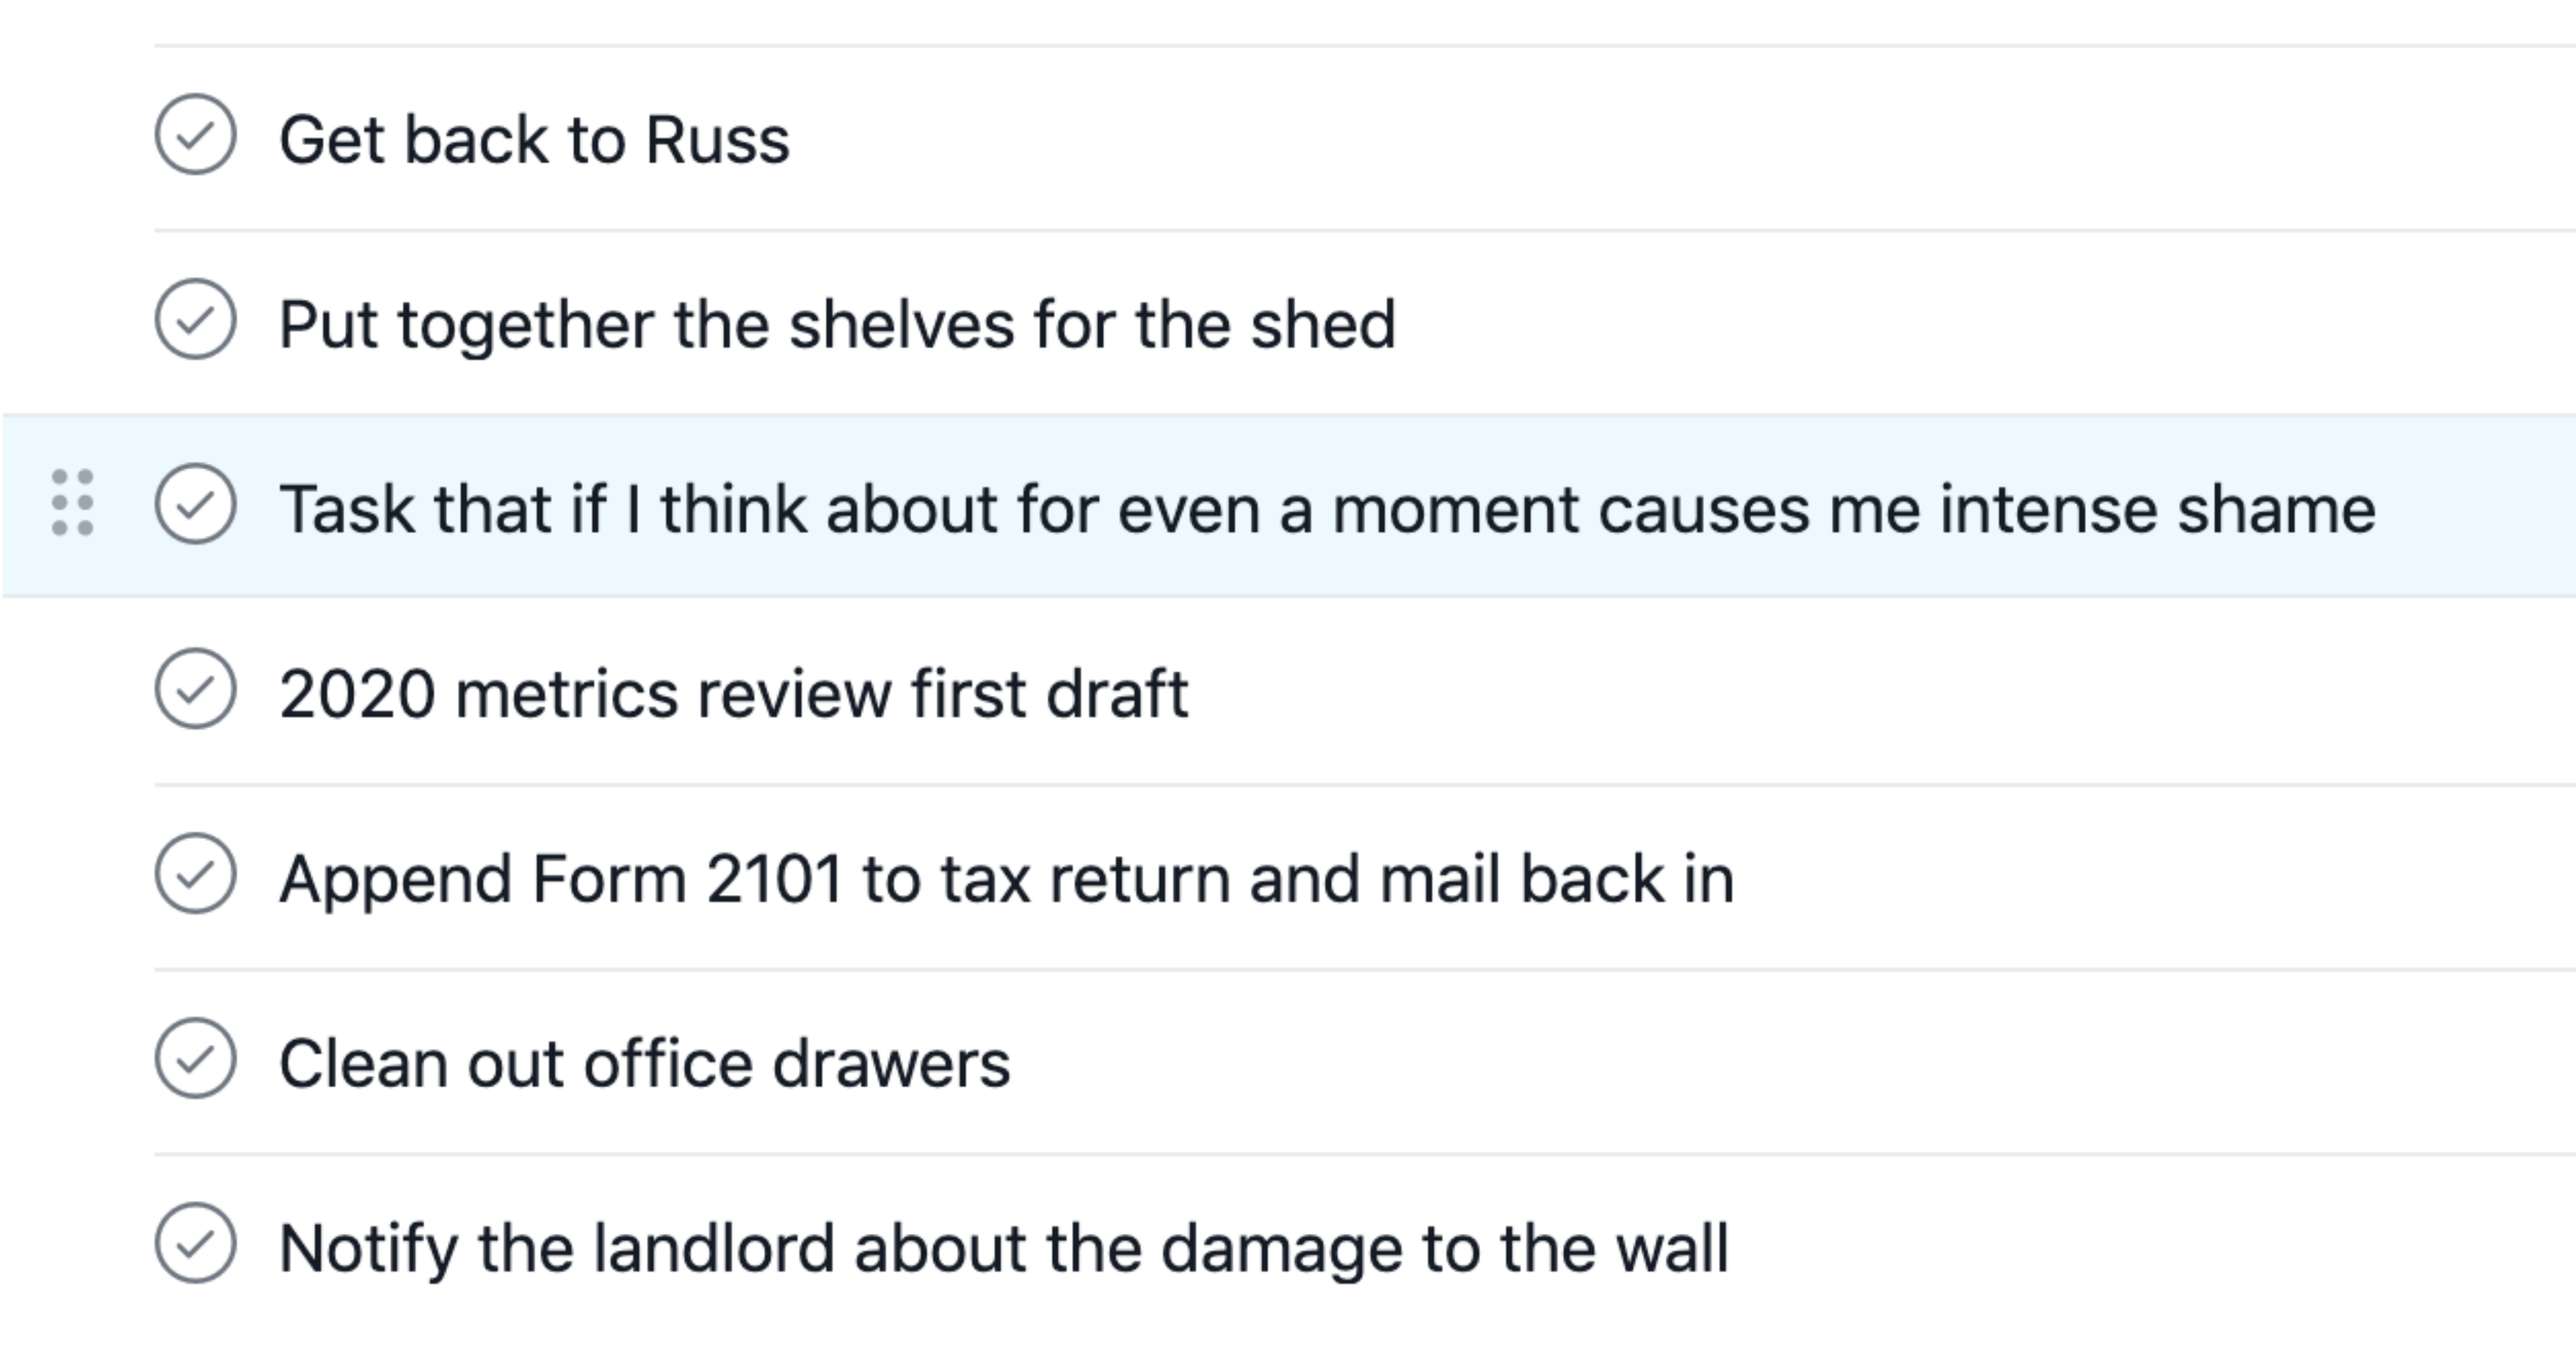 Mock to-do list with checkboxes.